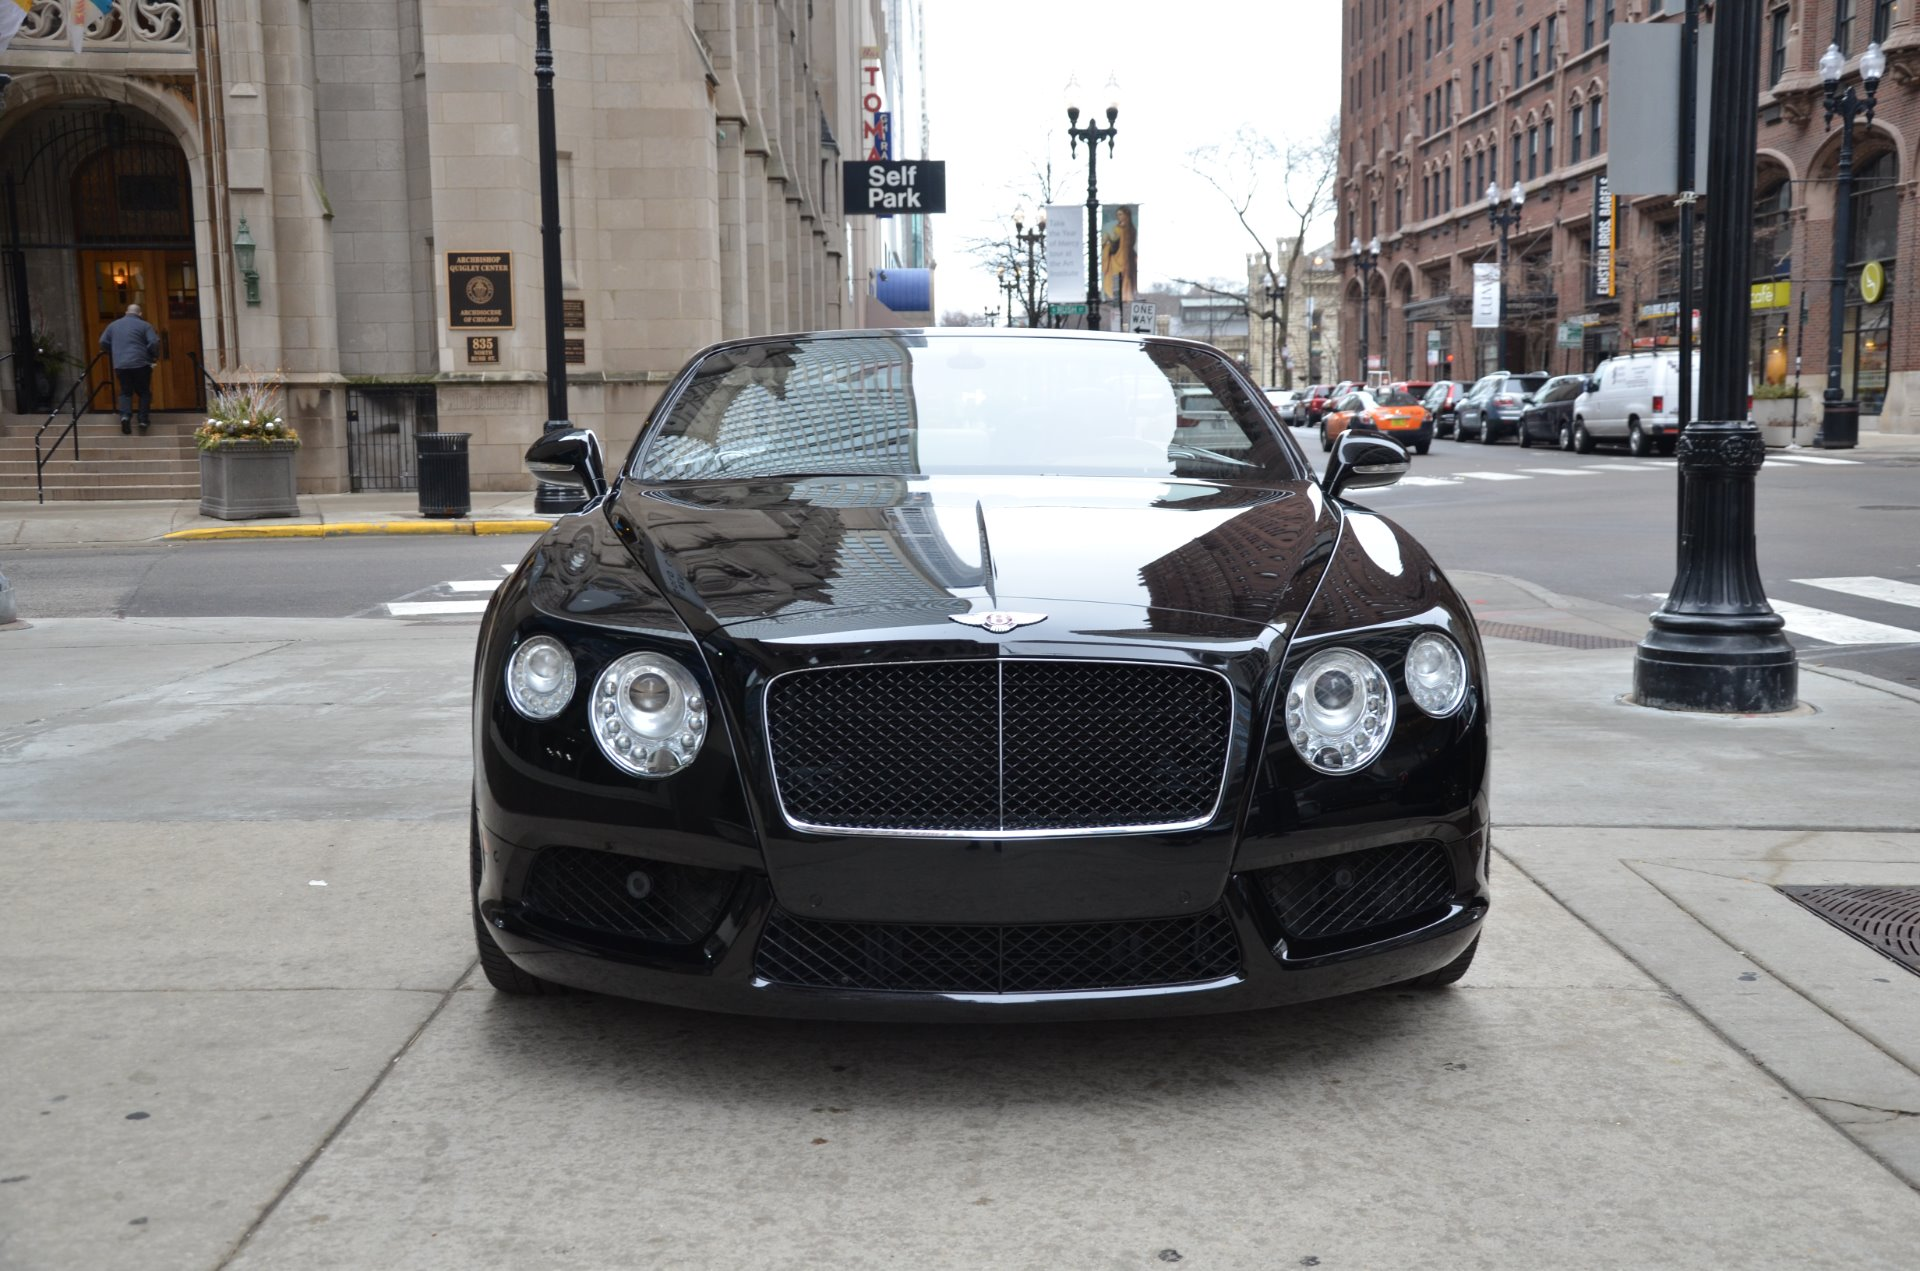 2013 Bentley Continental GTC V8 Stock R308A for sale near Chicago